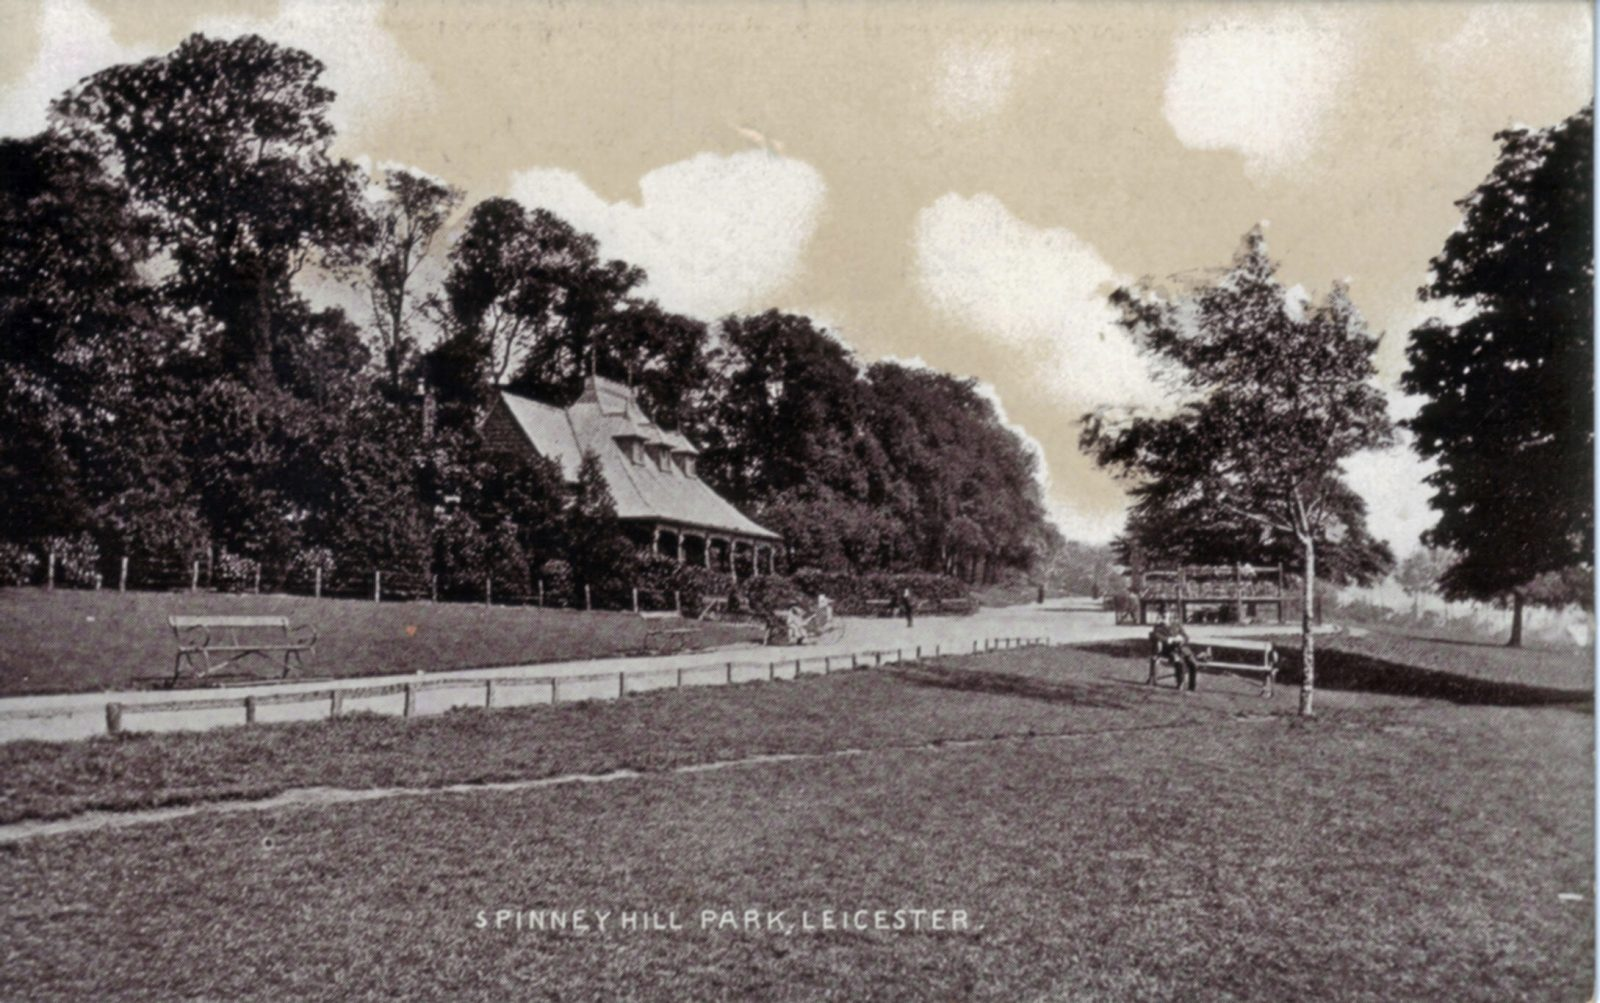 Spinney Hill Park, Leicester. Undated: Pavilion and broad avenue. (File:1065)